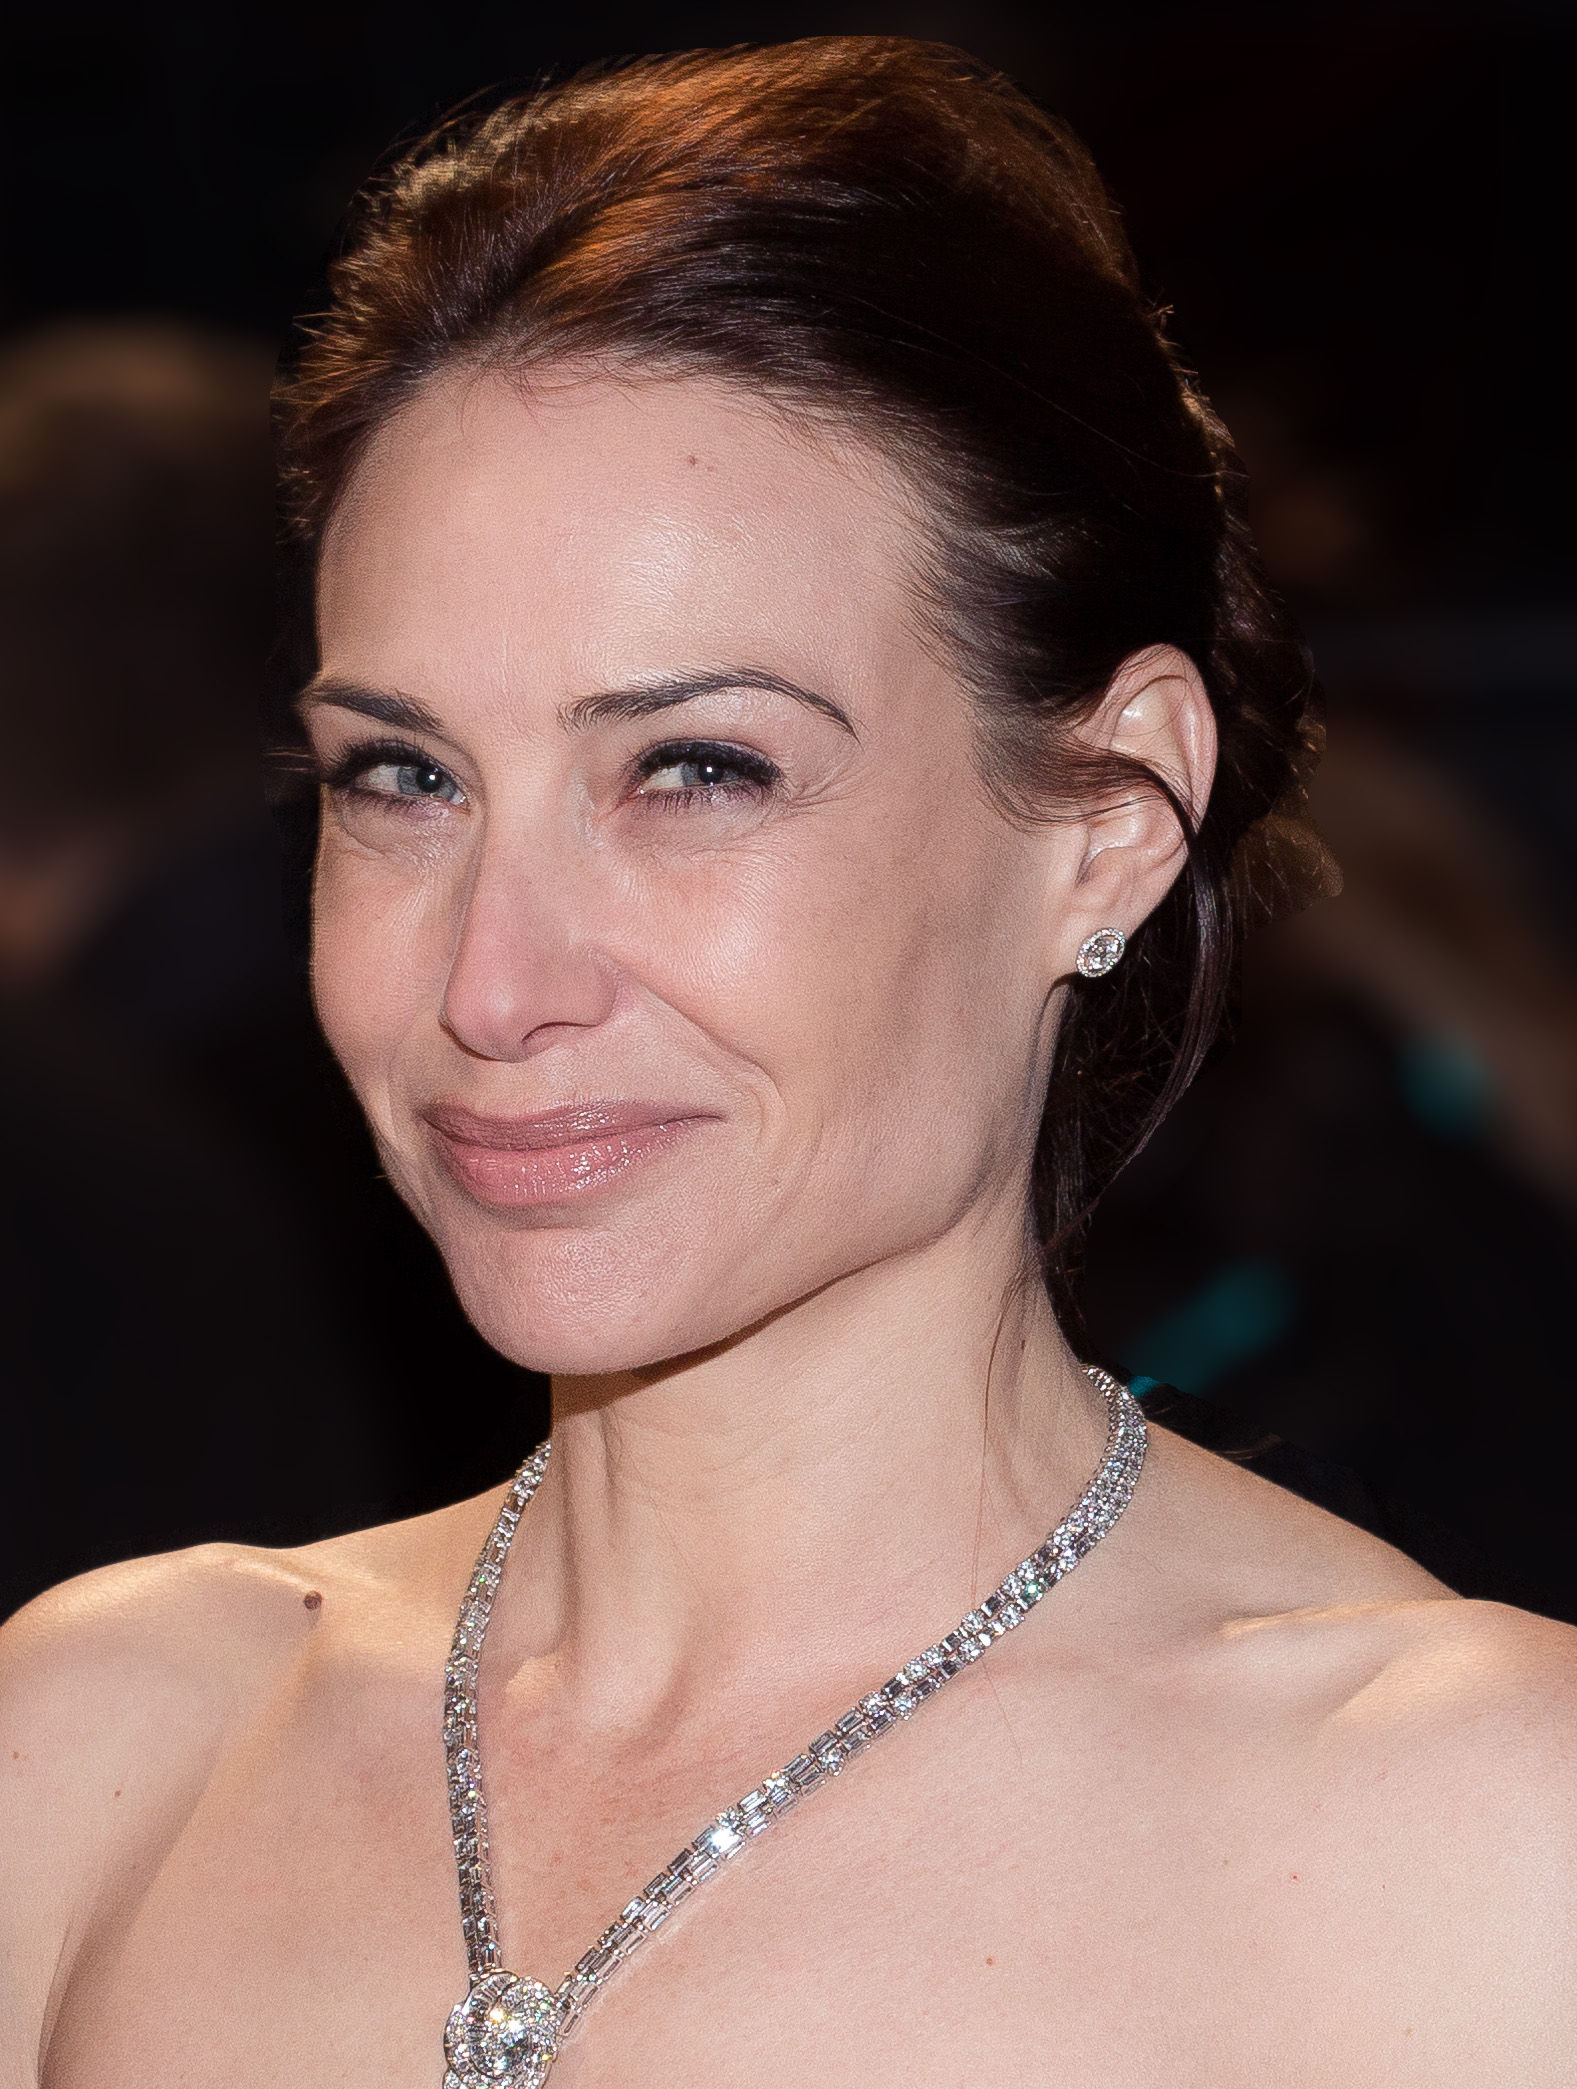 Photo of Claire Forlani: British actress